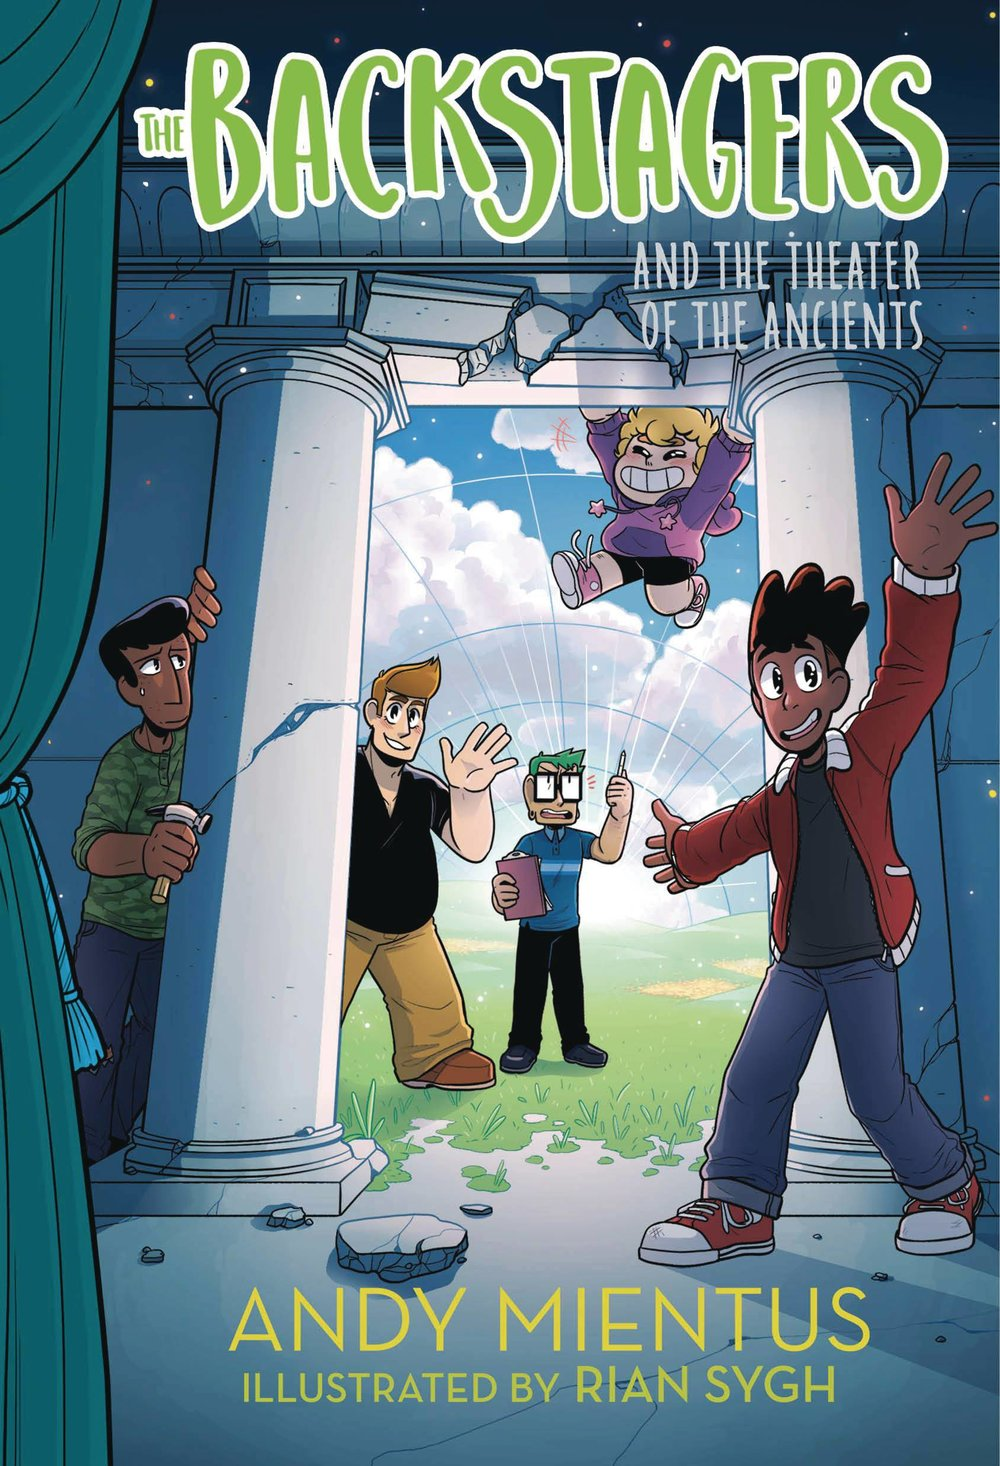 BACKSTAGERS ILLUS HC NOVEL 2 THEATRE OF ANCIENTS.jpg